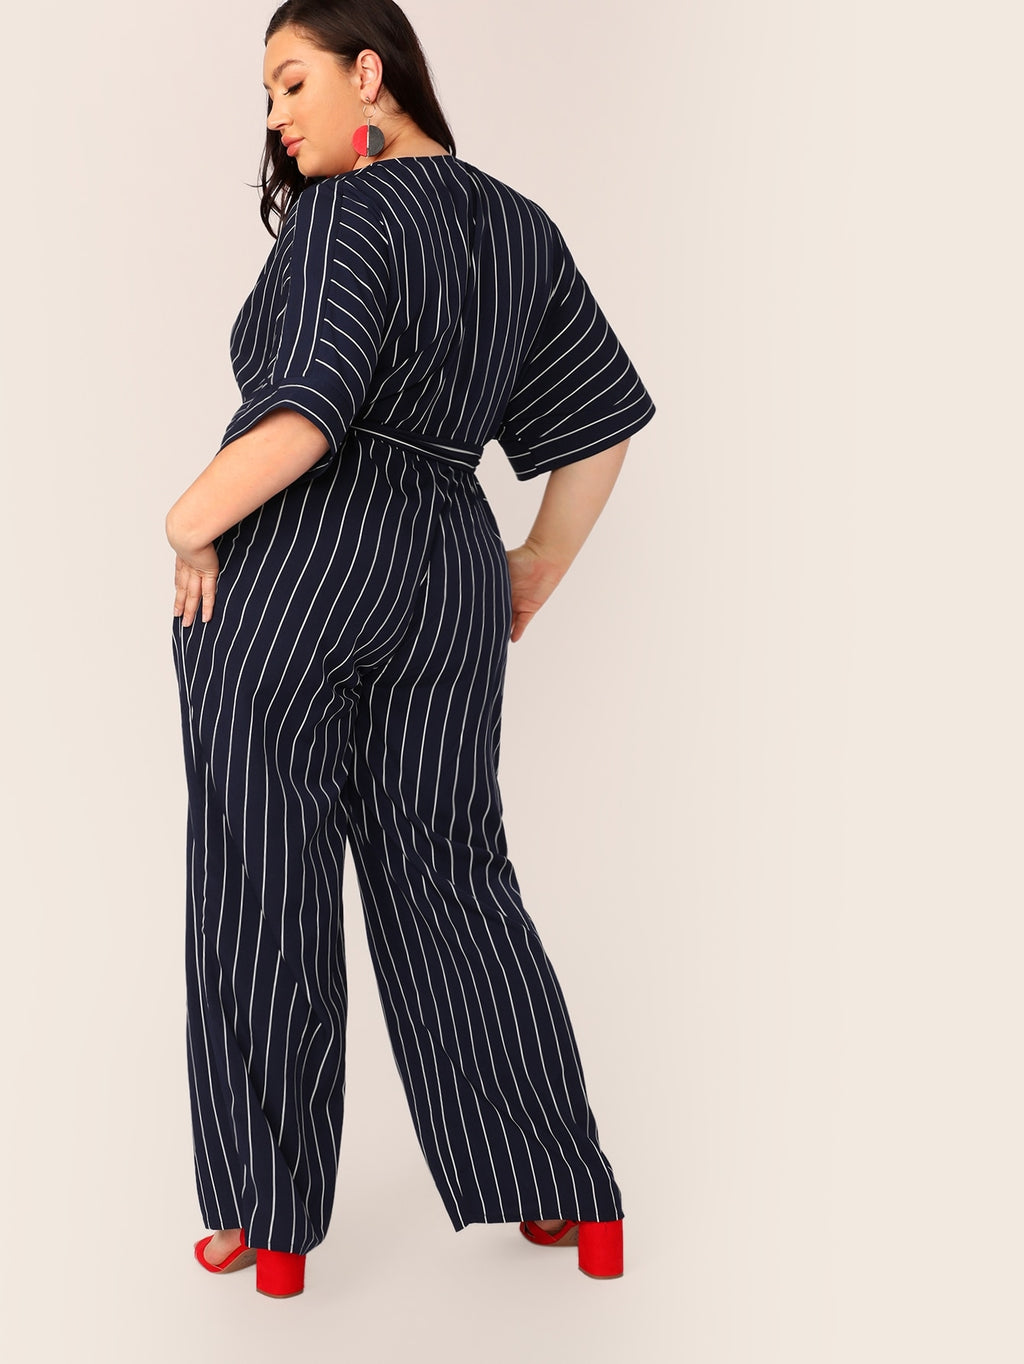 Plus Size Striped Surplice Neck Belted Palazzo Jumpsuit